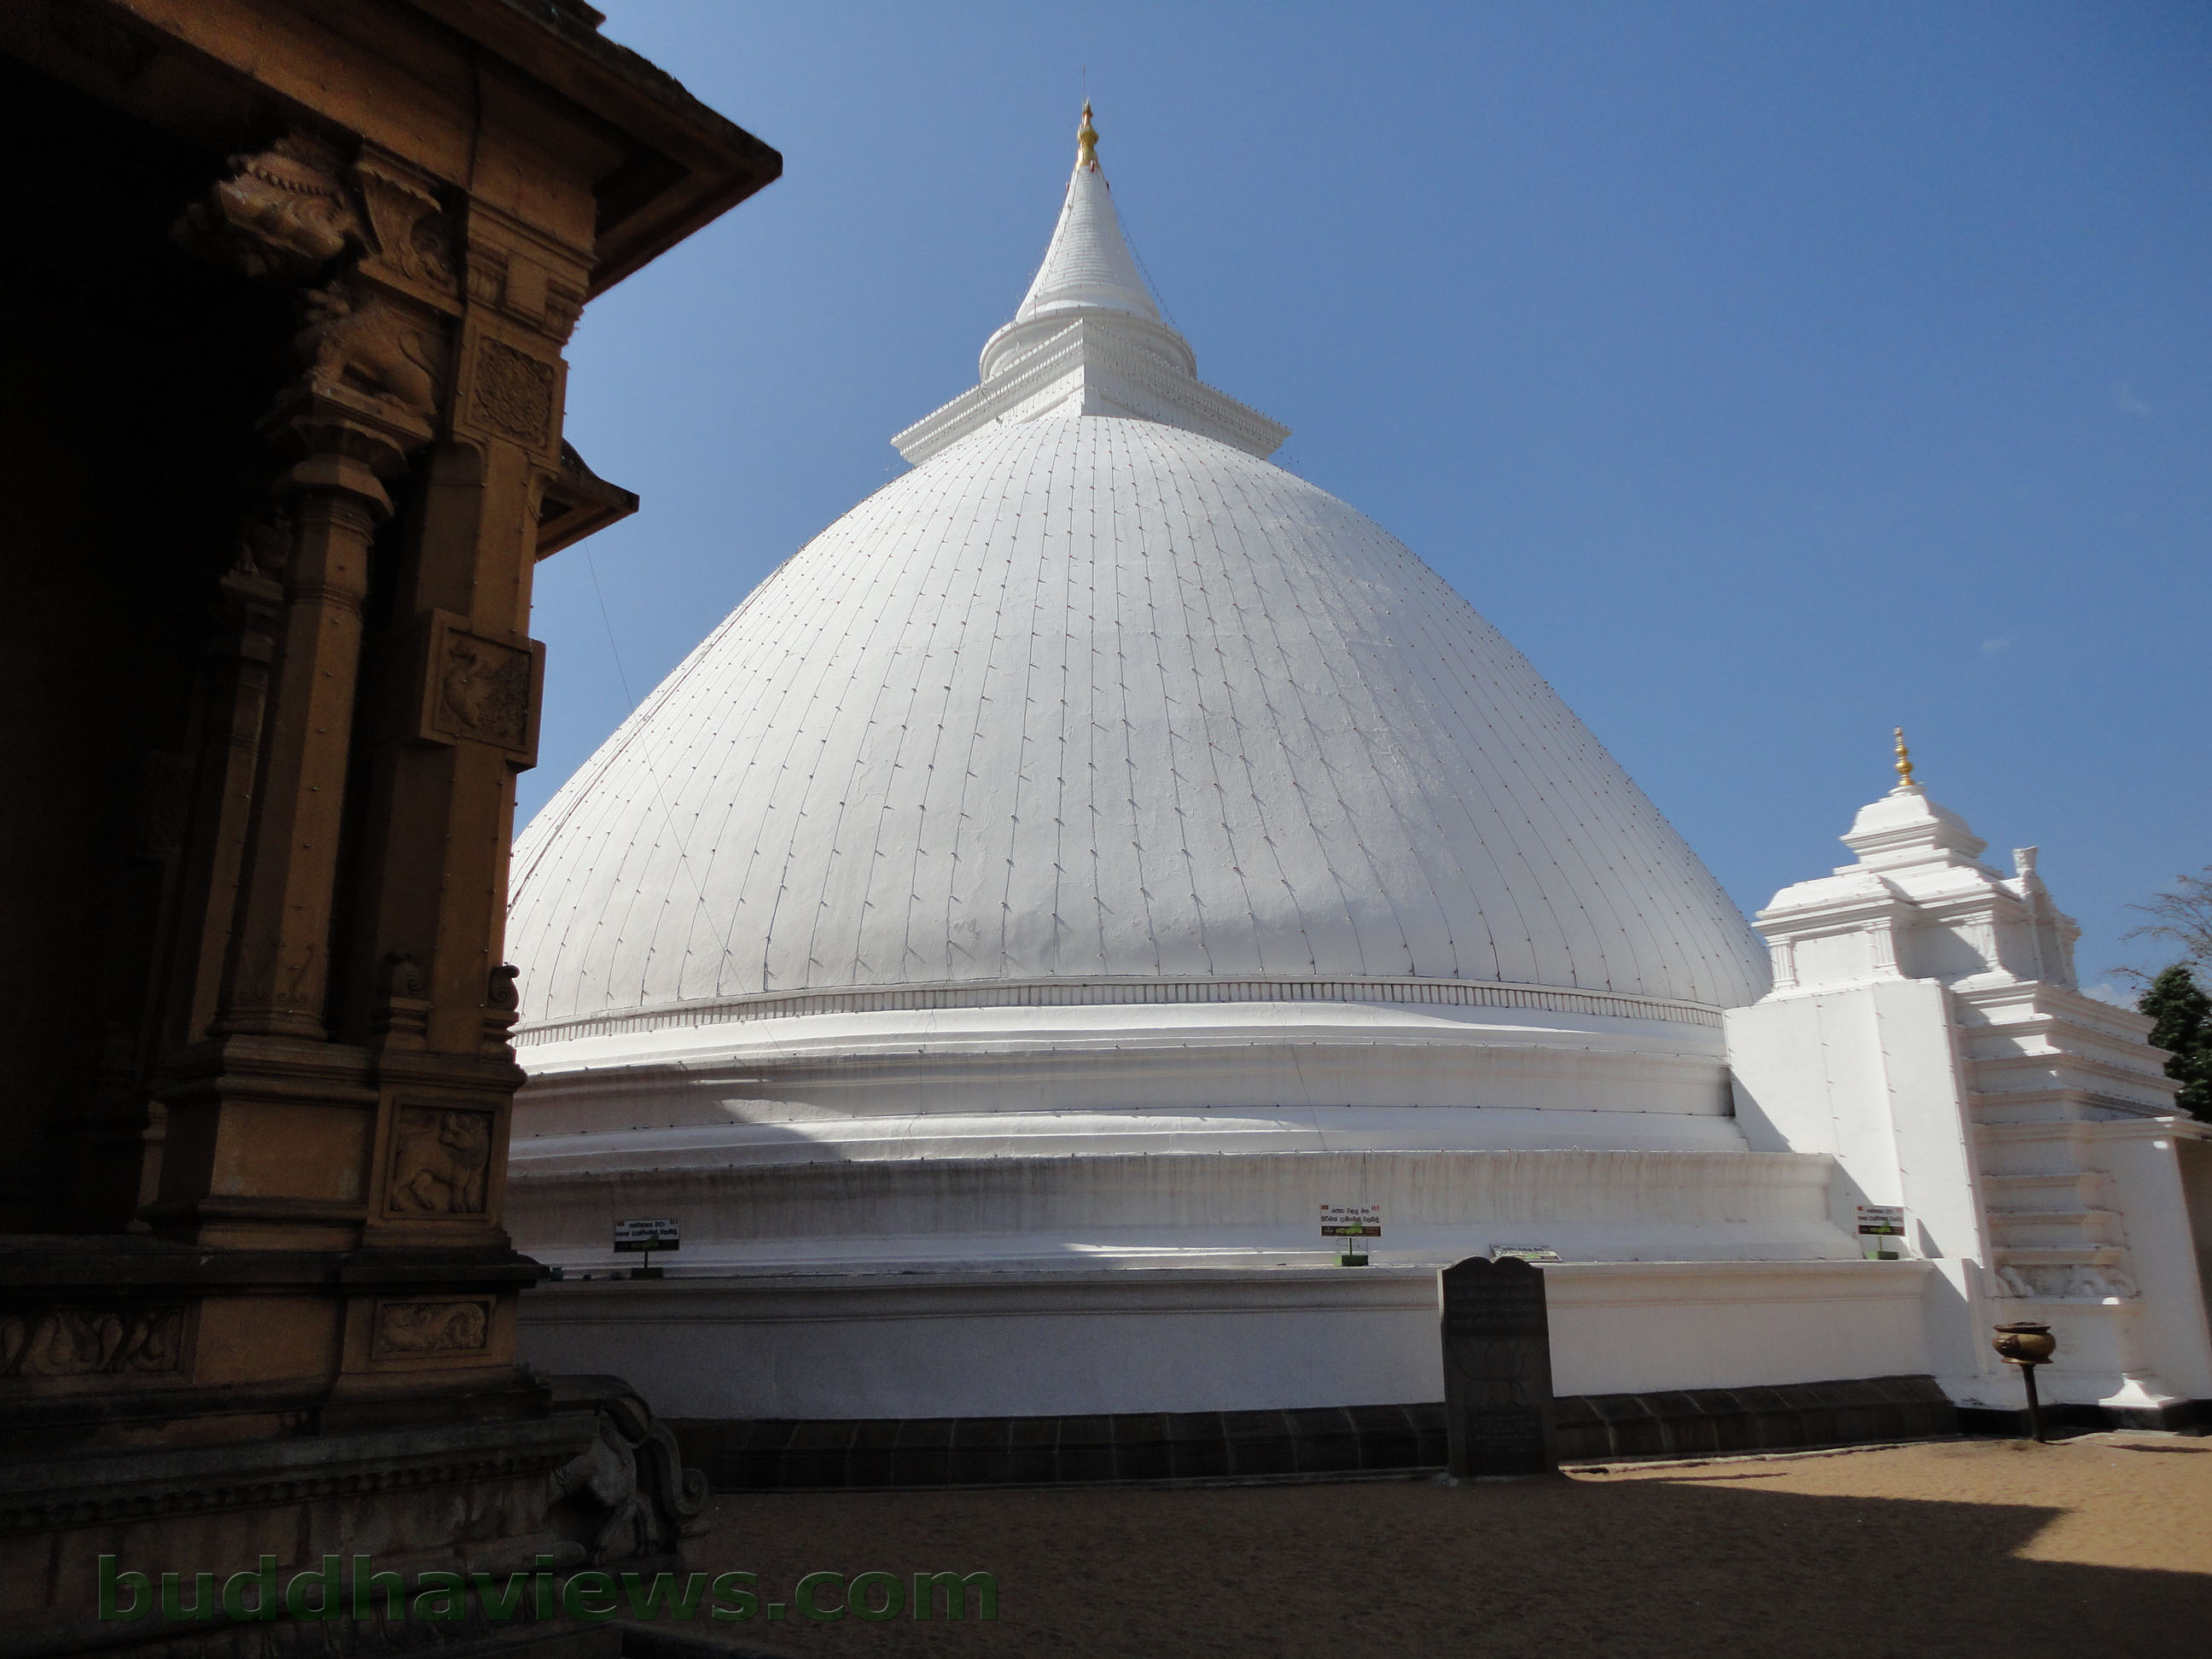 Buddhist Wallpapers India And Sri LankaBuddhaviews